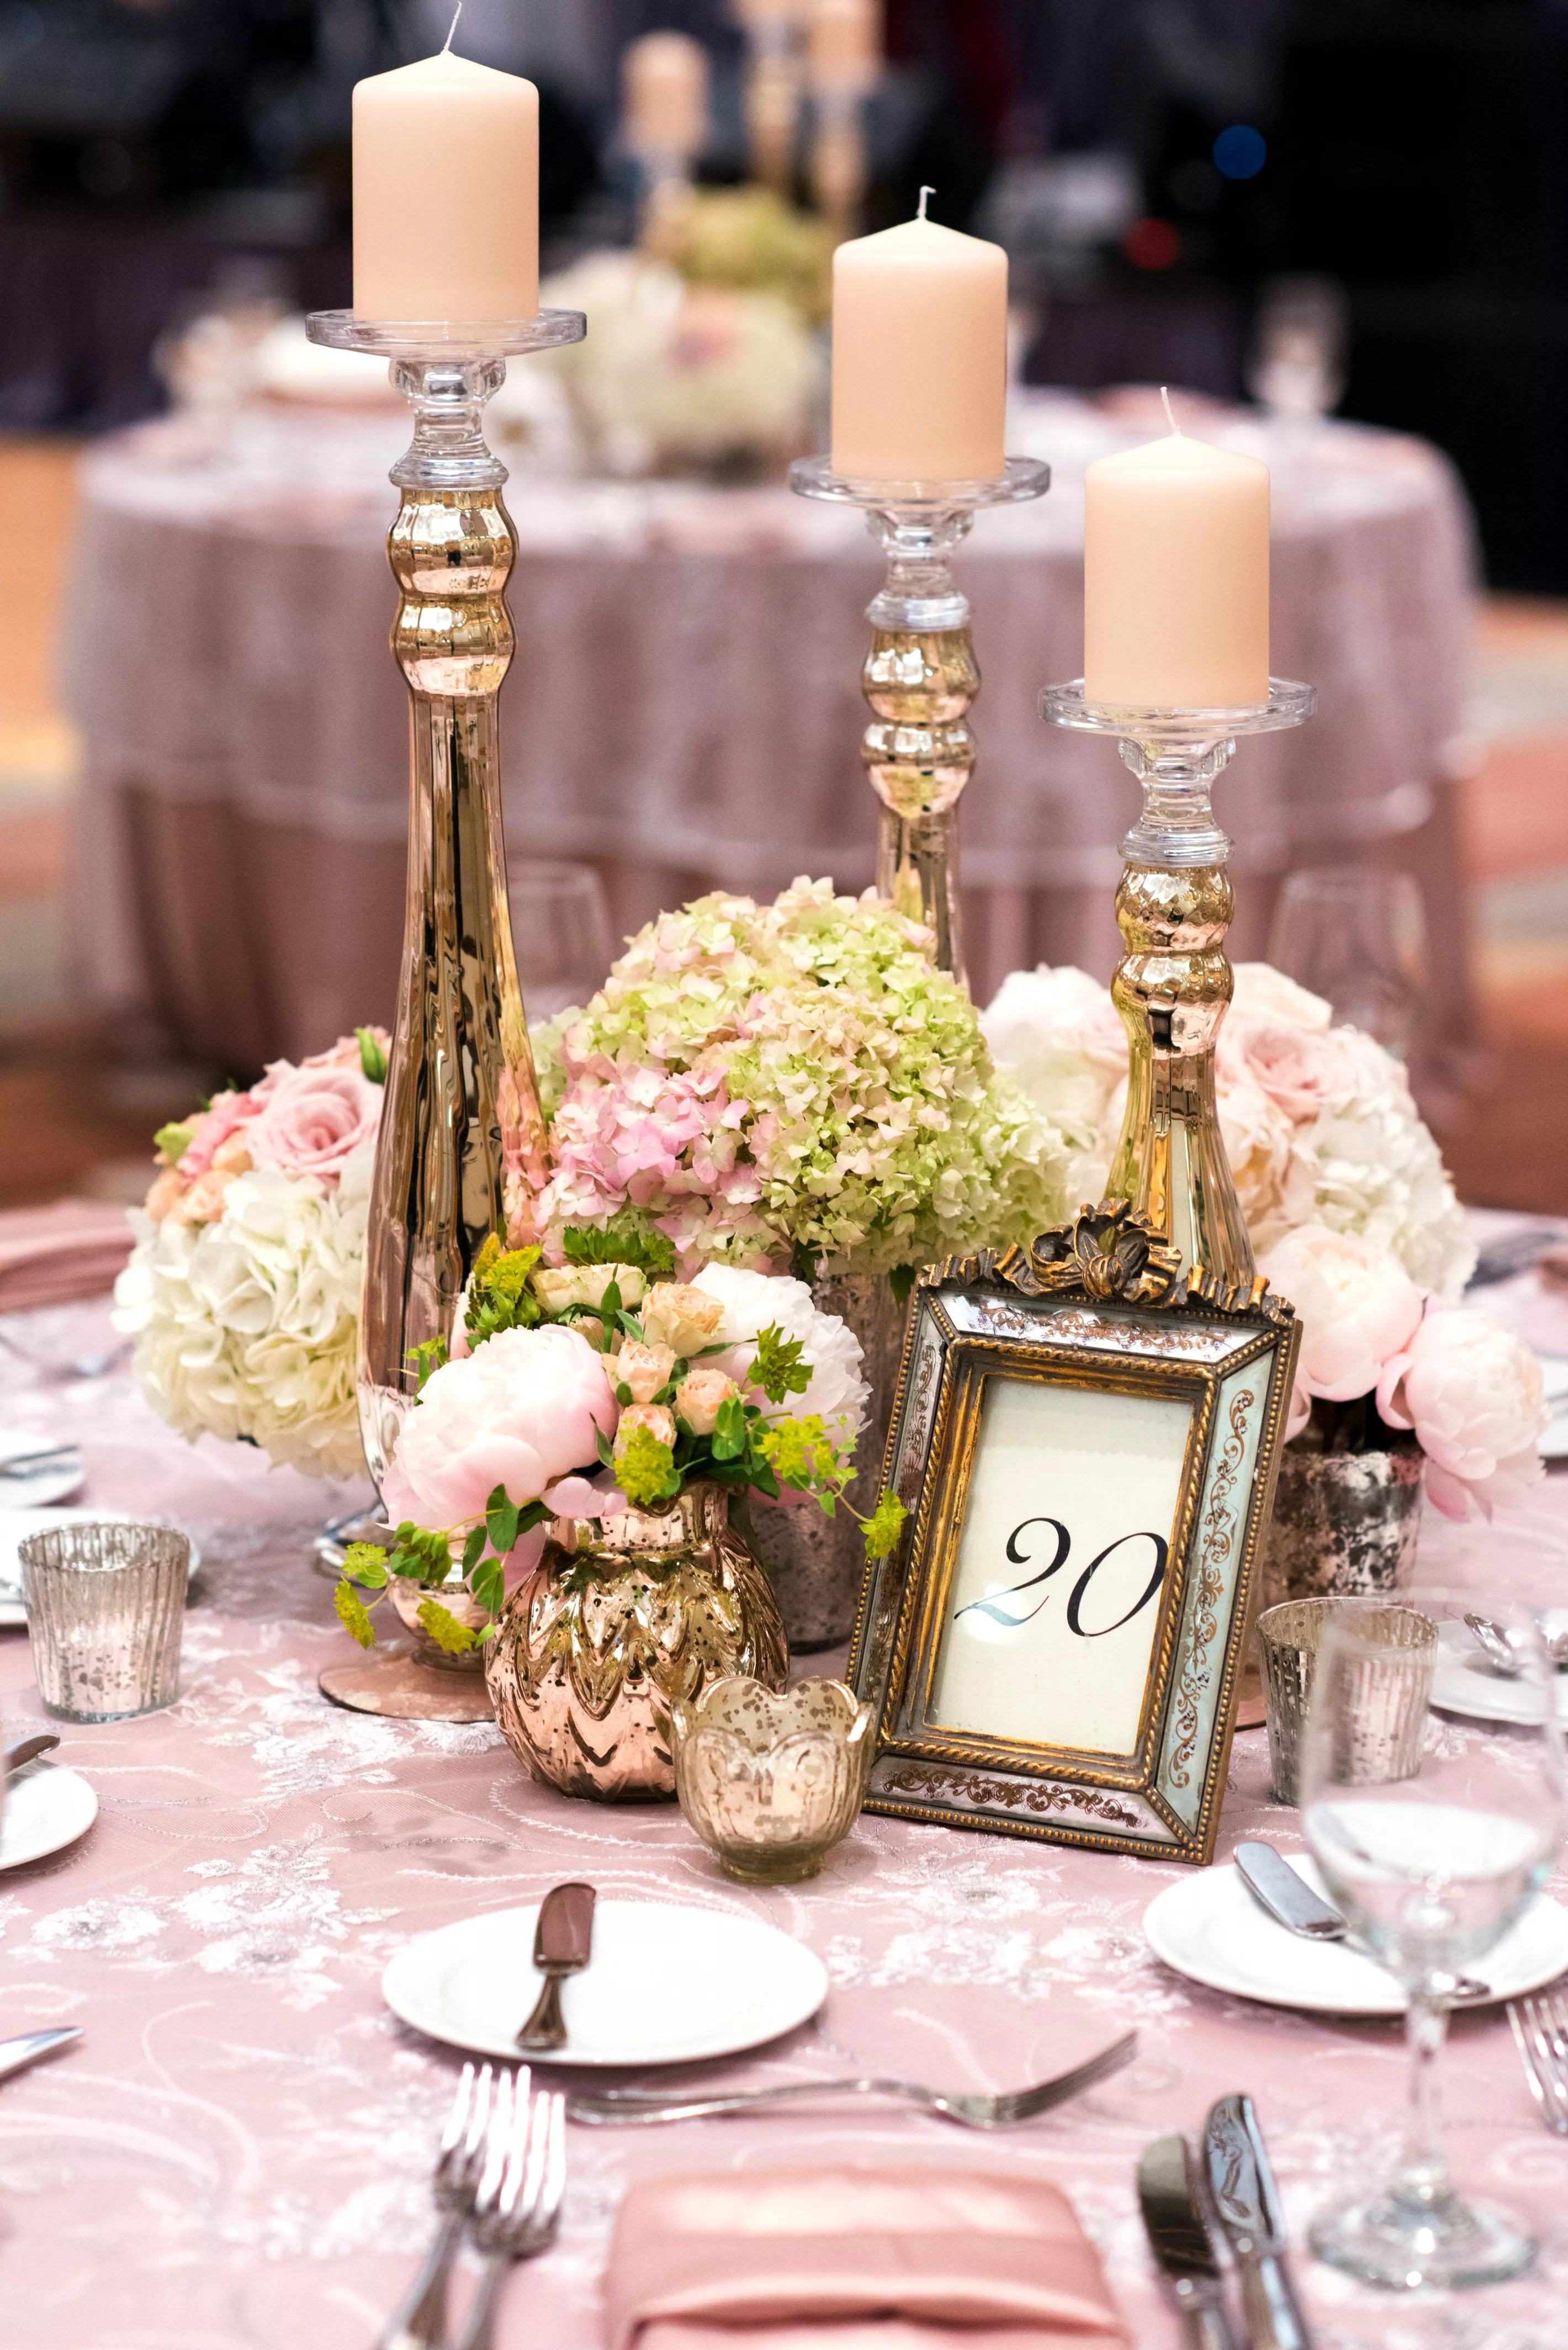 Romantic Centerpieces With Tall Gold Candlesticks